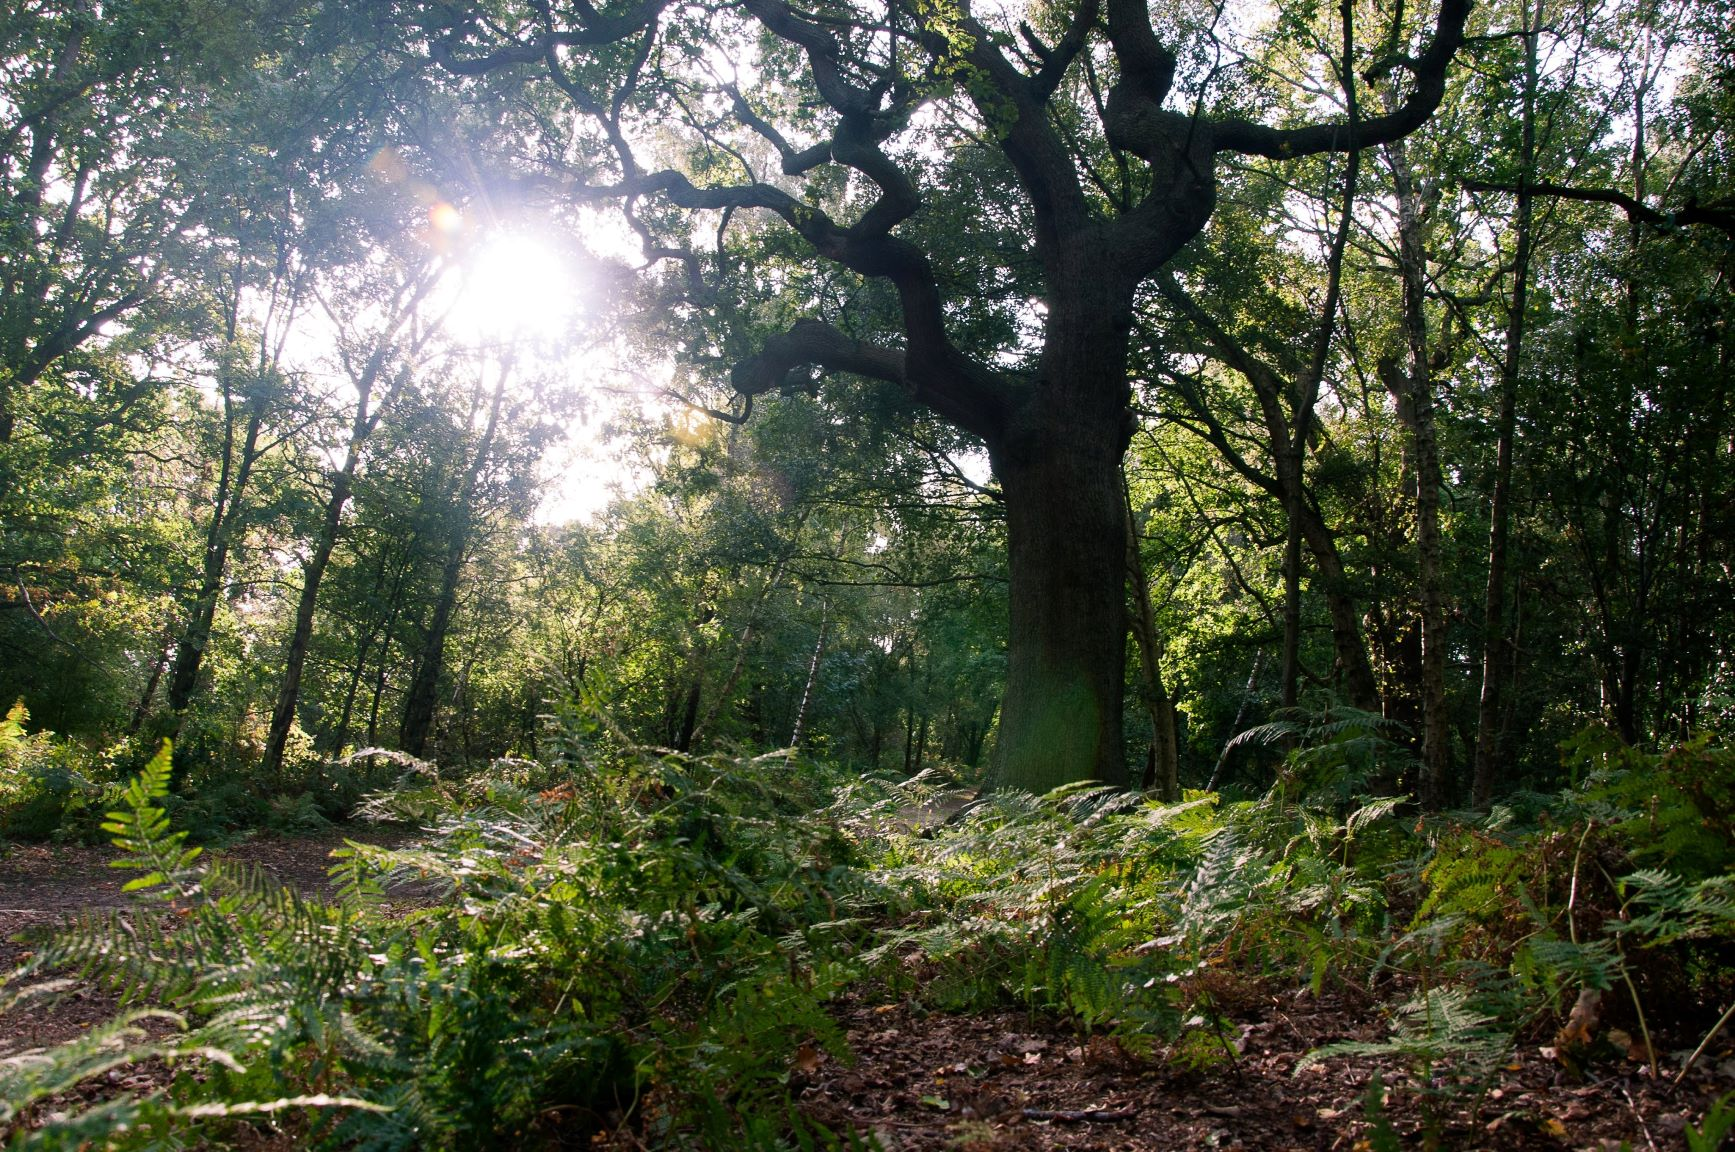 5-Year Management Plan for Surrey Hills Area of Outstanding Natural Beauty Adopted by Mole Valley District Council